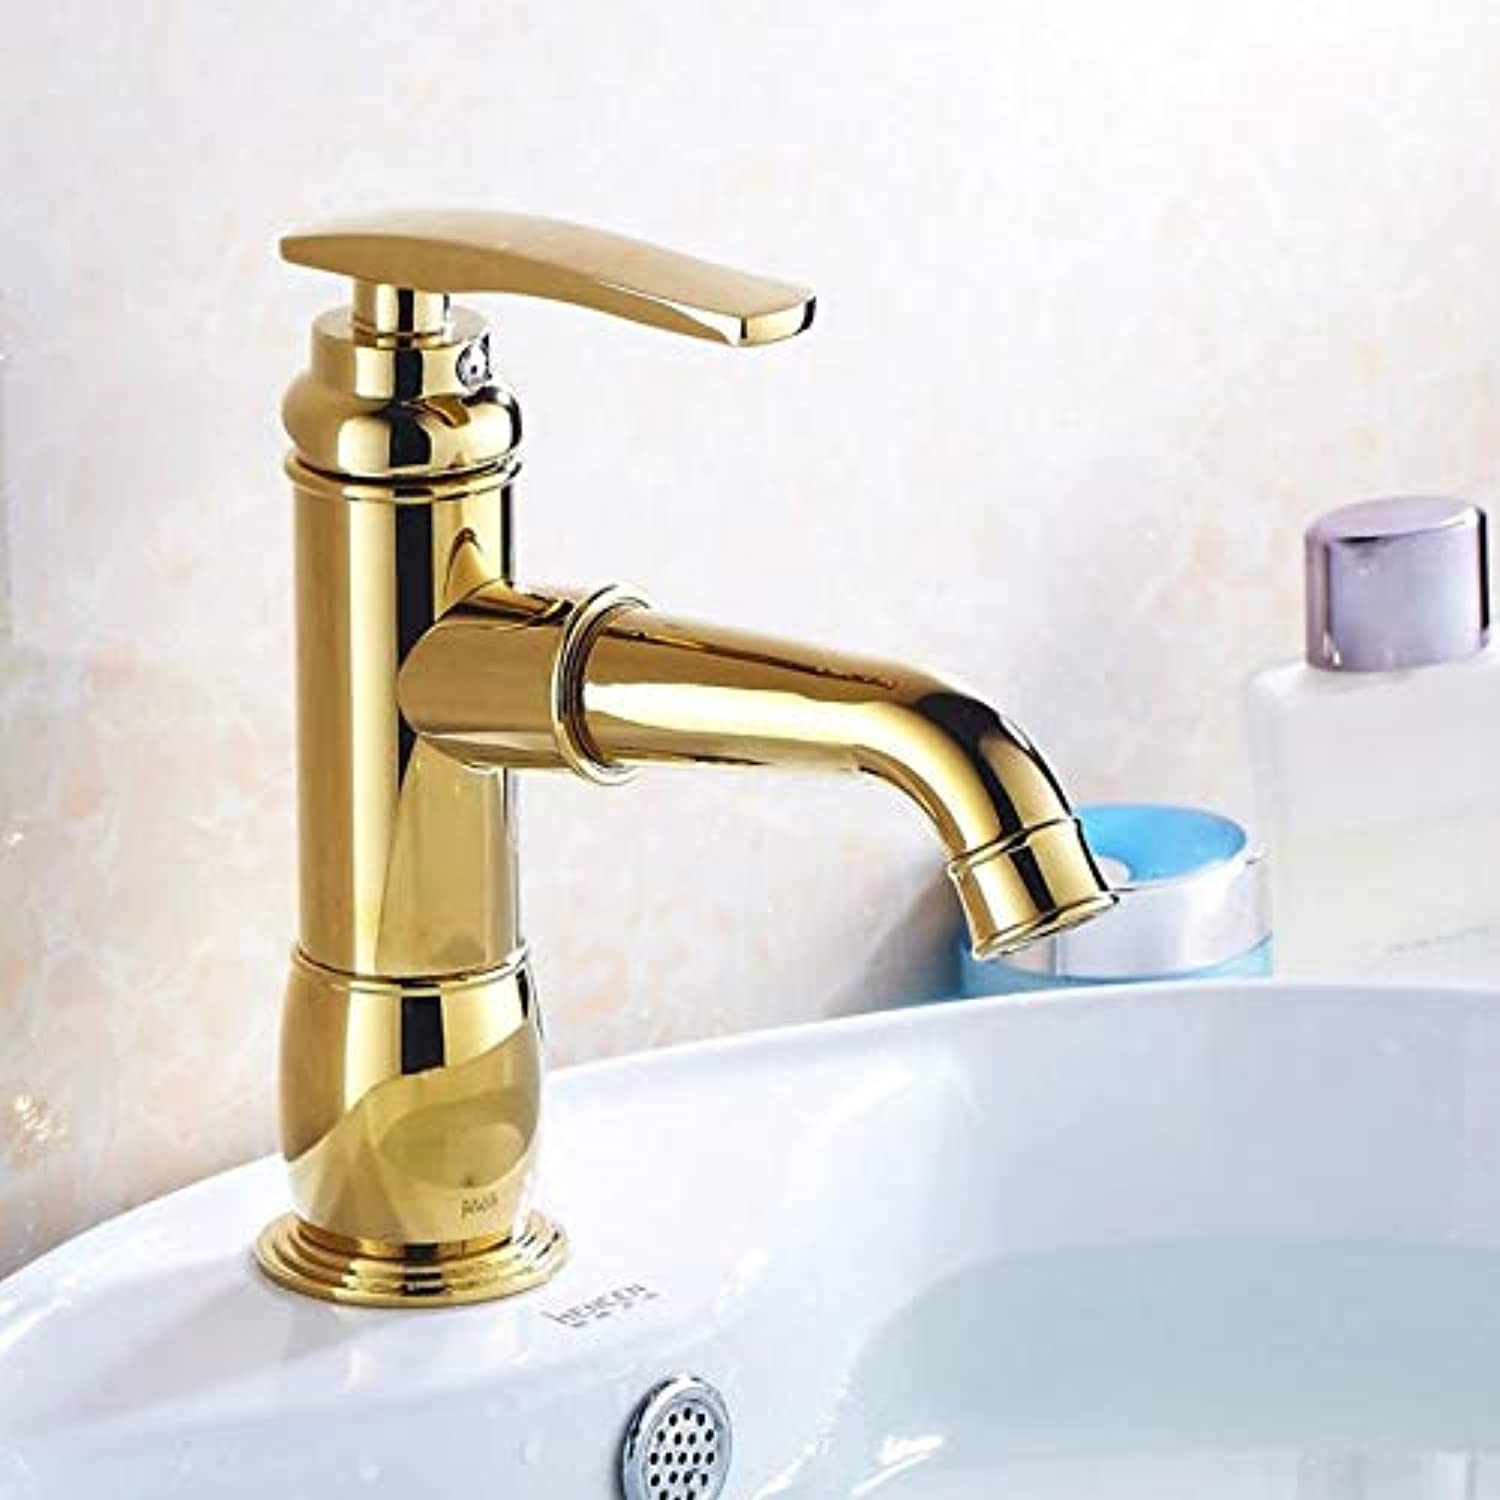 redOOY Taps gold-Plated Faucet Copper Single-Hole Basin Mixer Hot And Cold